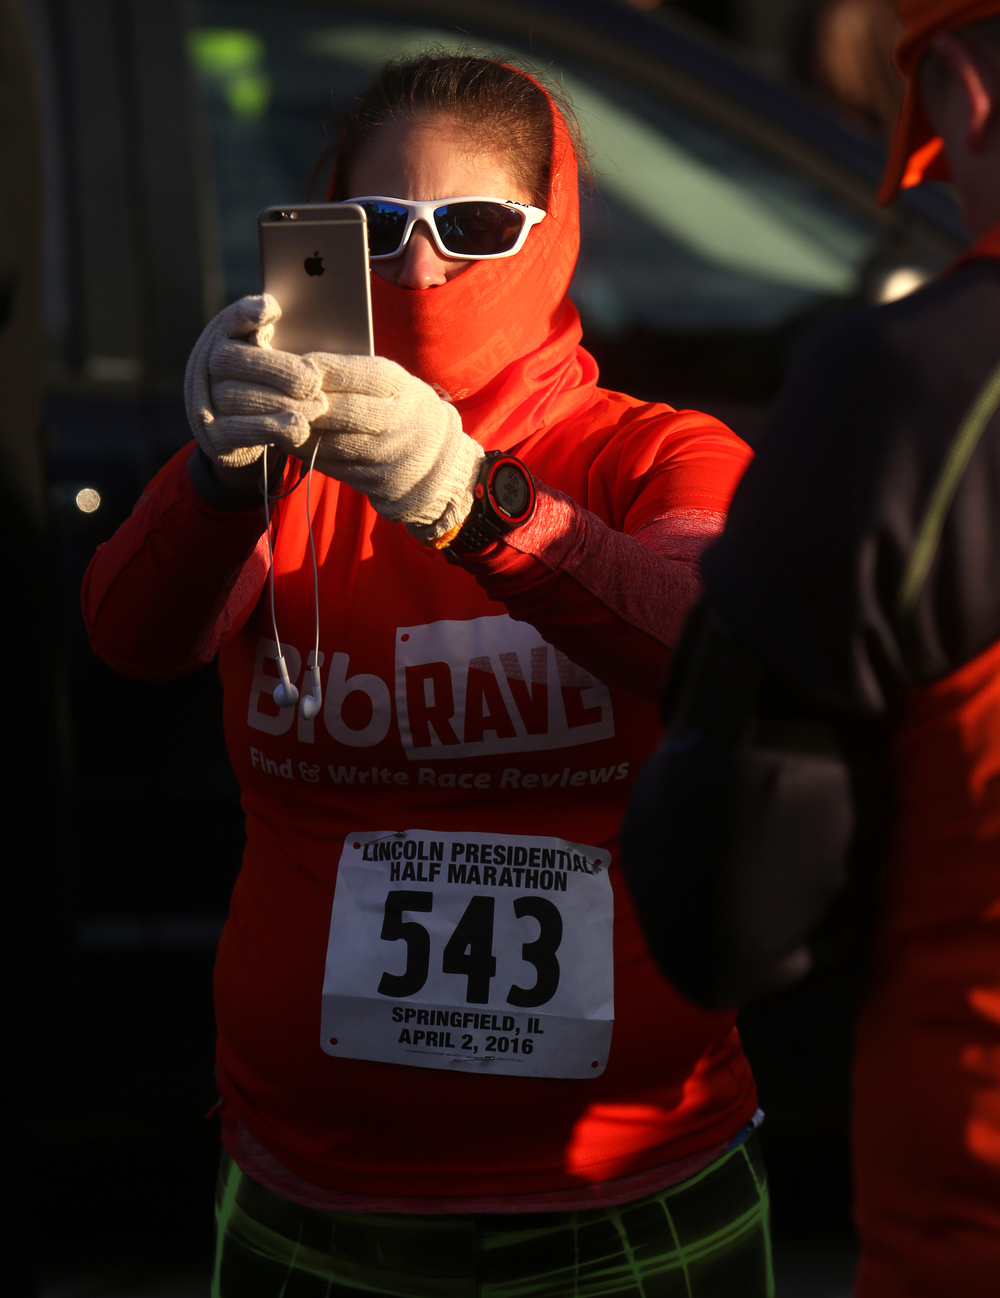 Runner Christine Guenther of Mayfield Village, OH immortalizes herself for posterity before the start of the race early Saturday morning. David Spencer/The State Journal Register